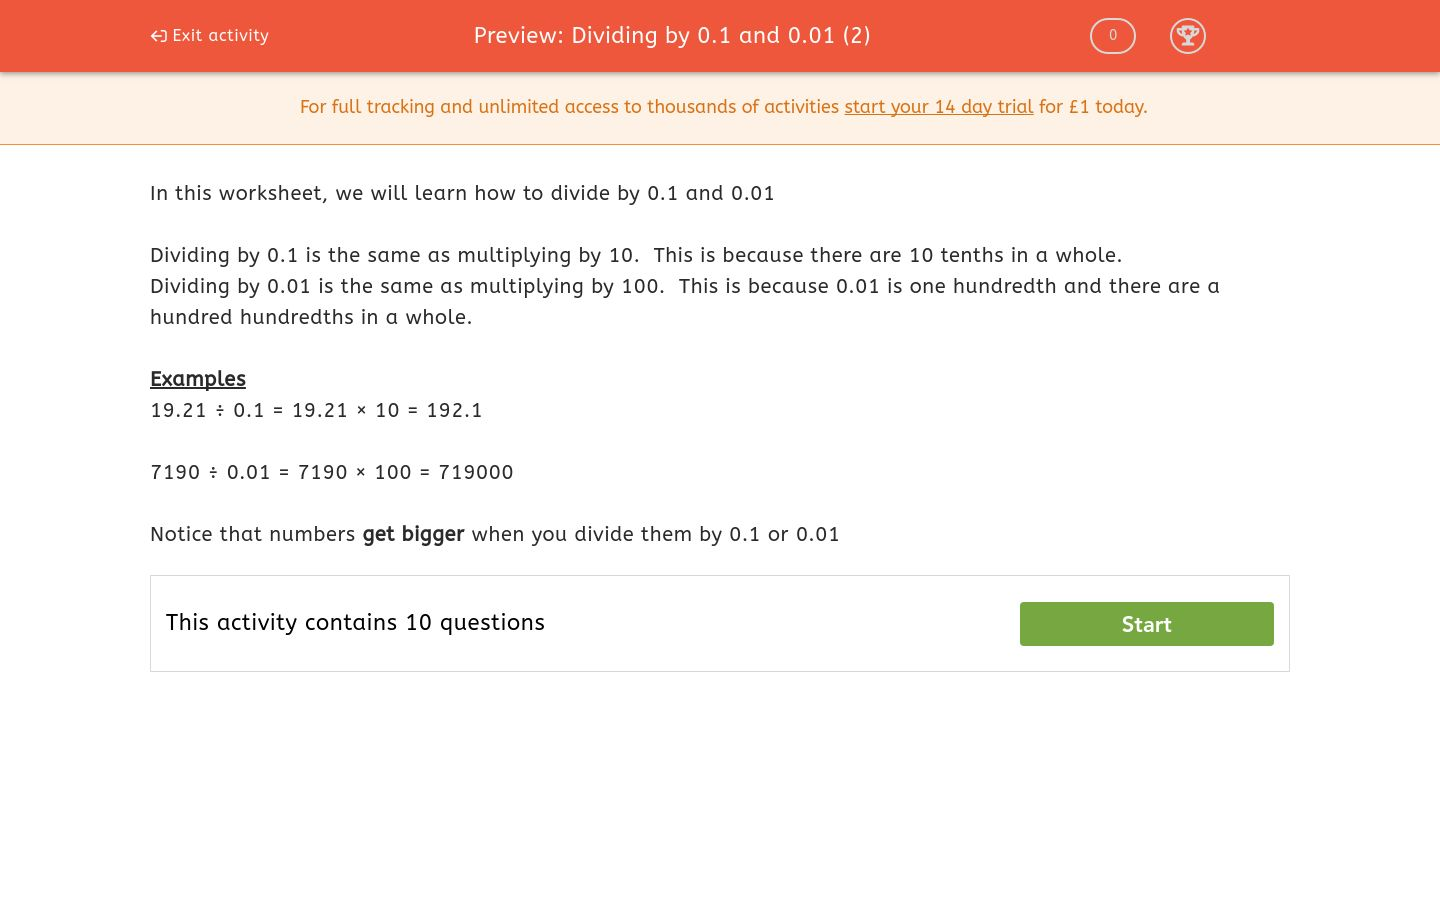 'Dividing by 0.1 and 0.01 (2)' worksheet